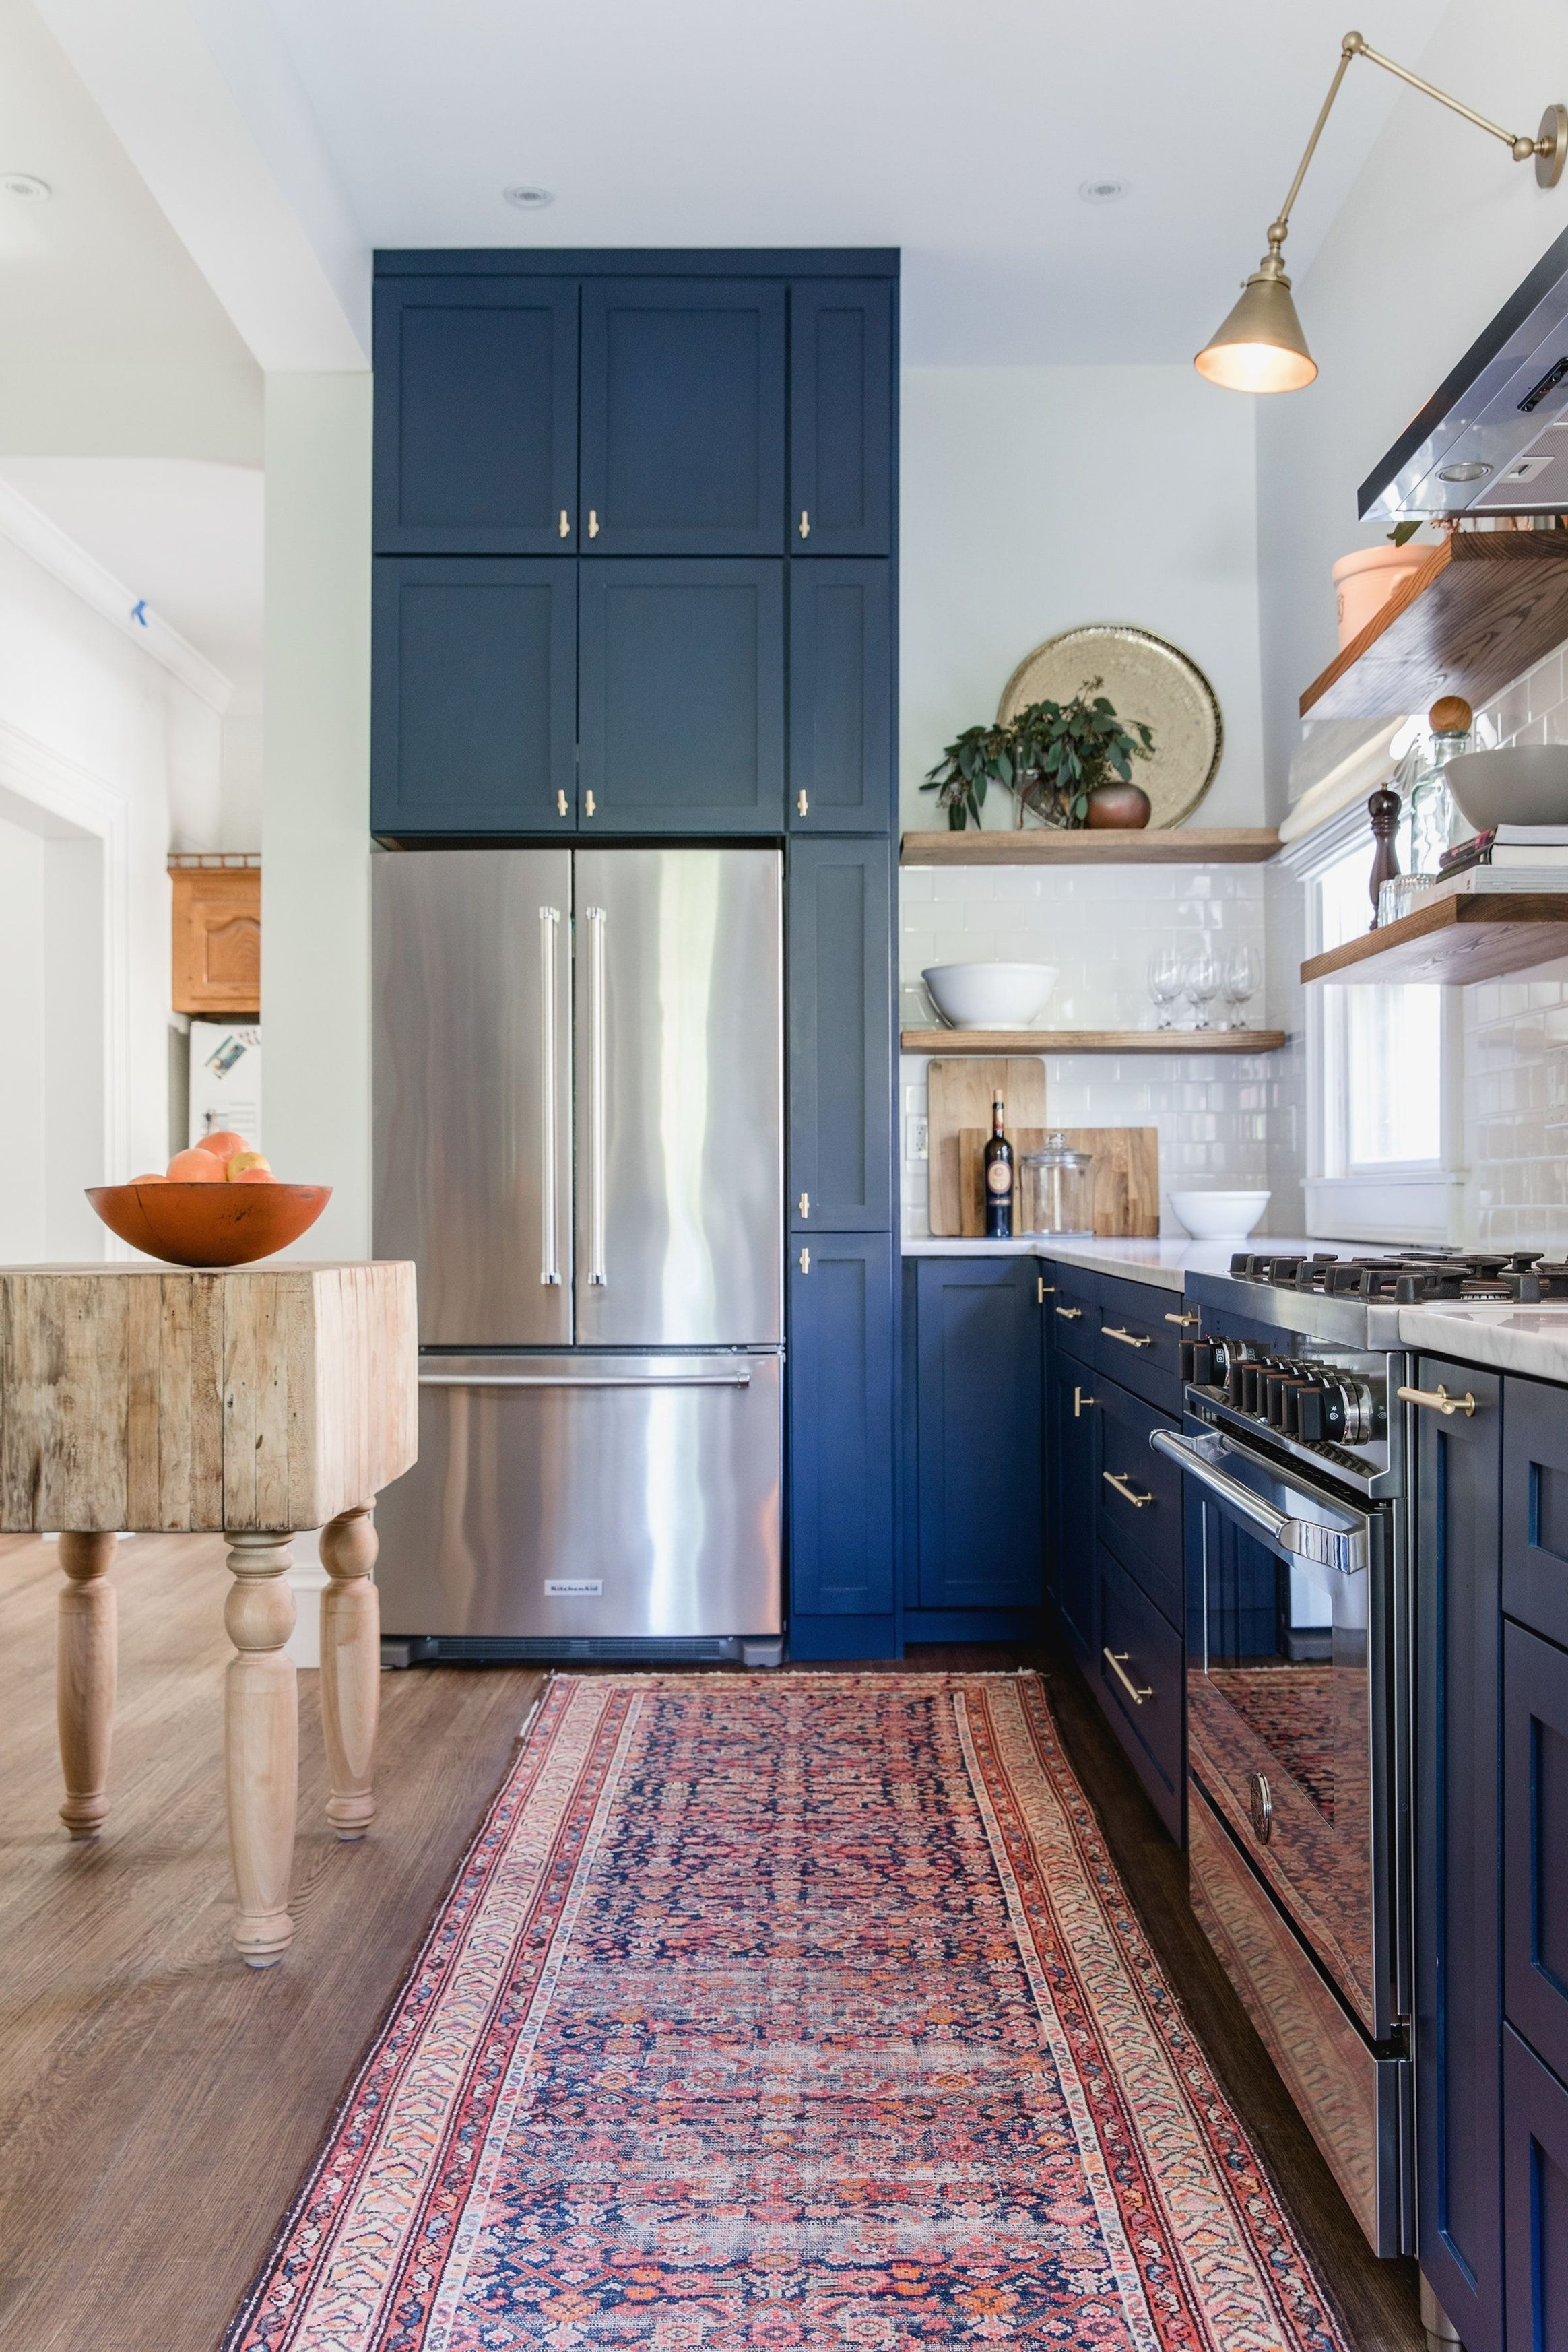 average cost of small kitchen remodel | remodeling kitchen in 2018